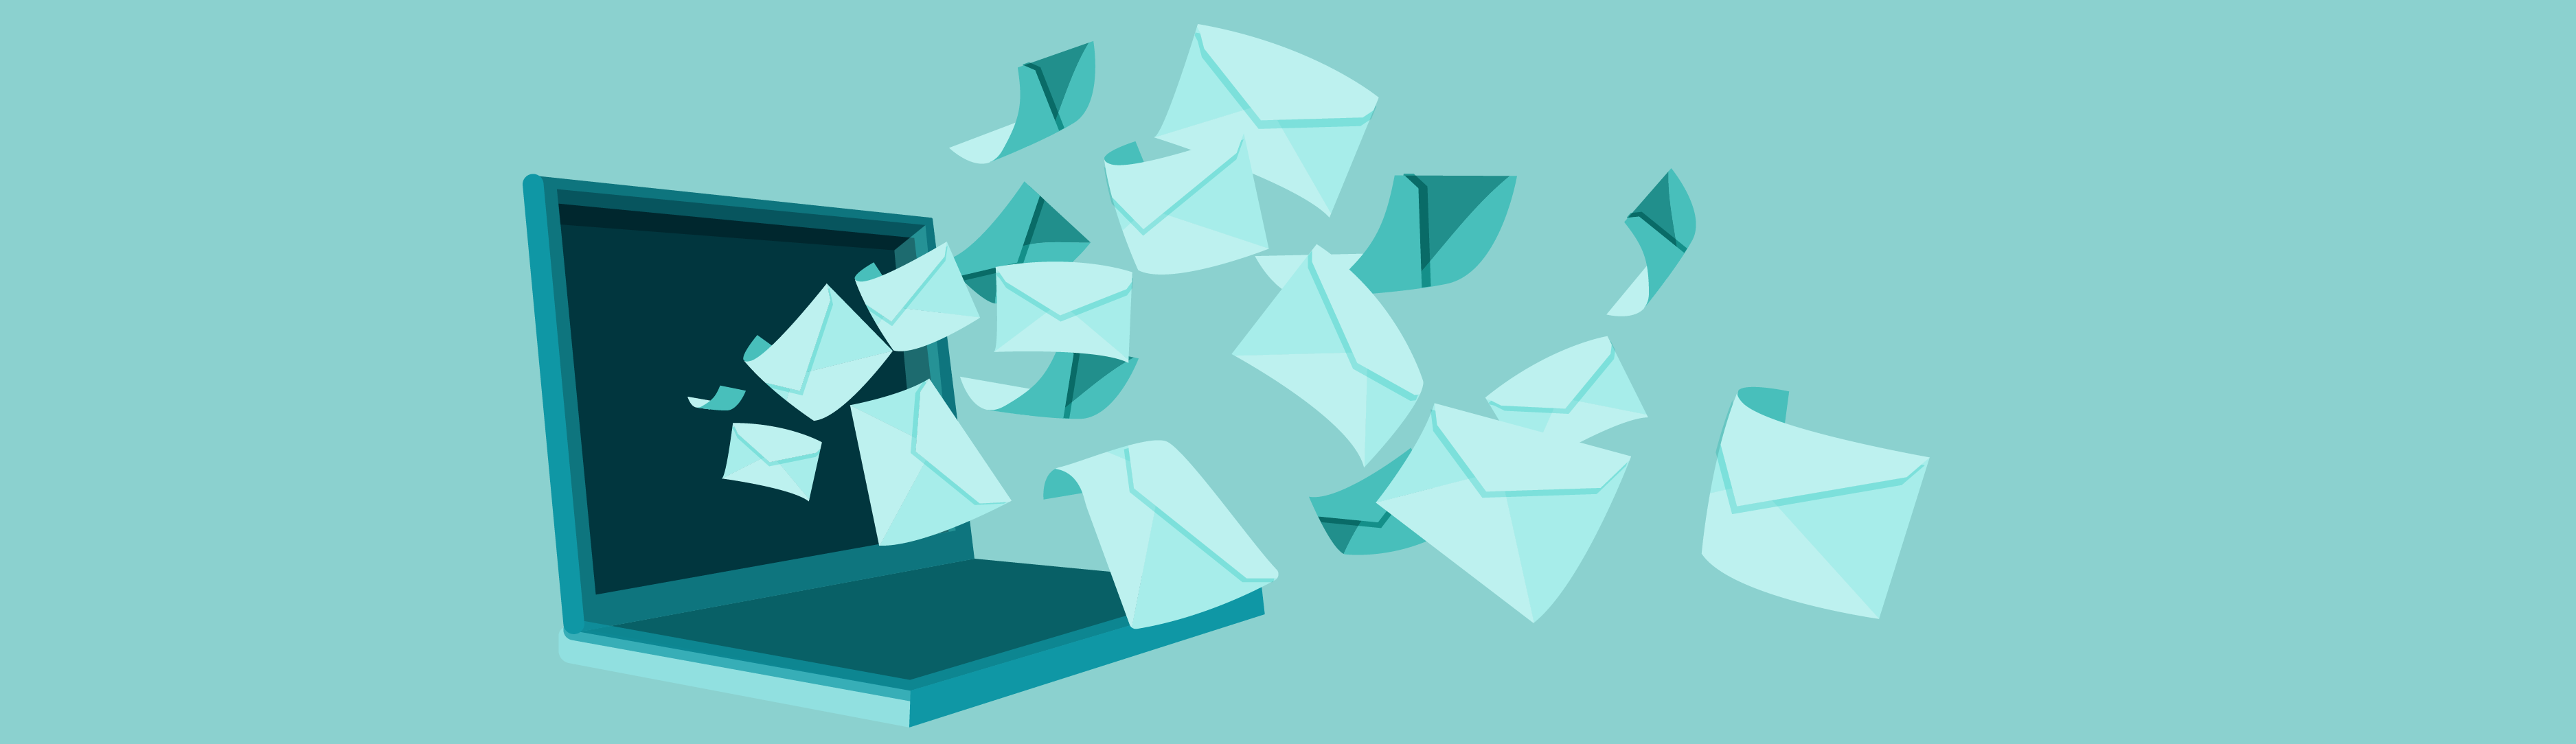 Cool email signatures for marketing your brand | Brafton